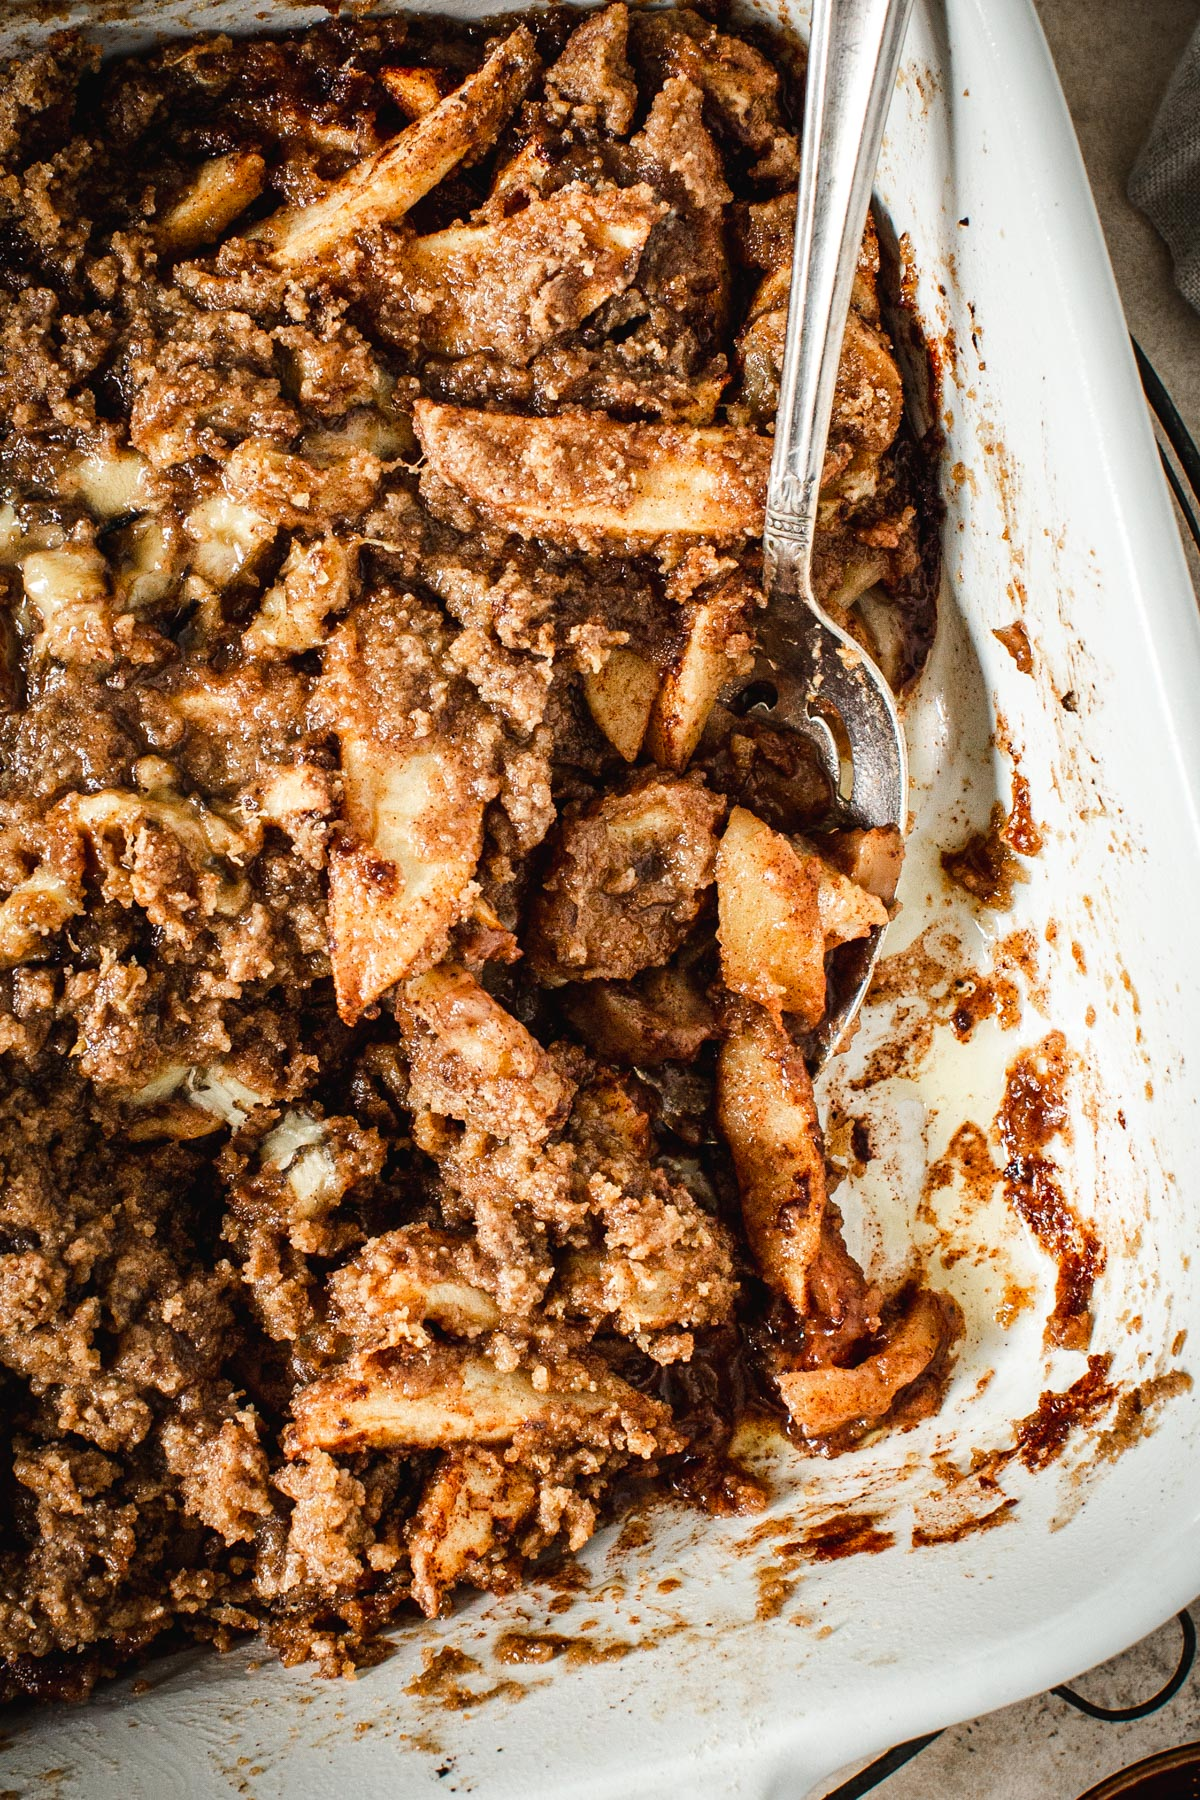 Baked apple crumble without oats in a baking dish with a silver serving spoon.